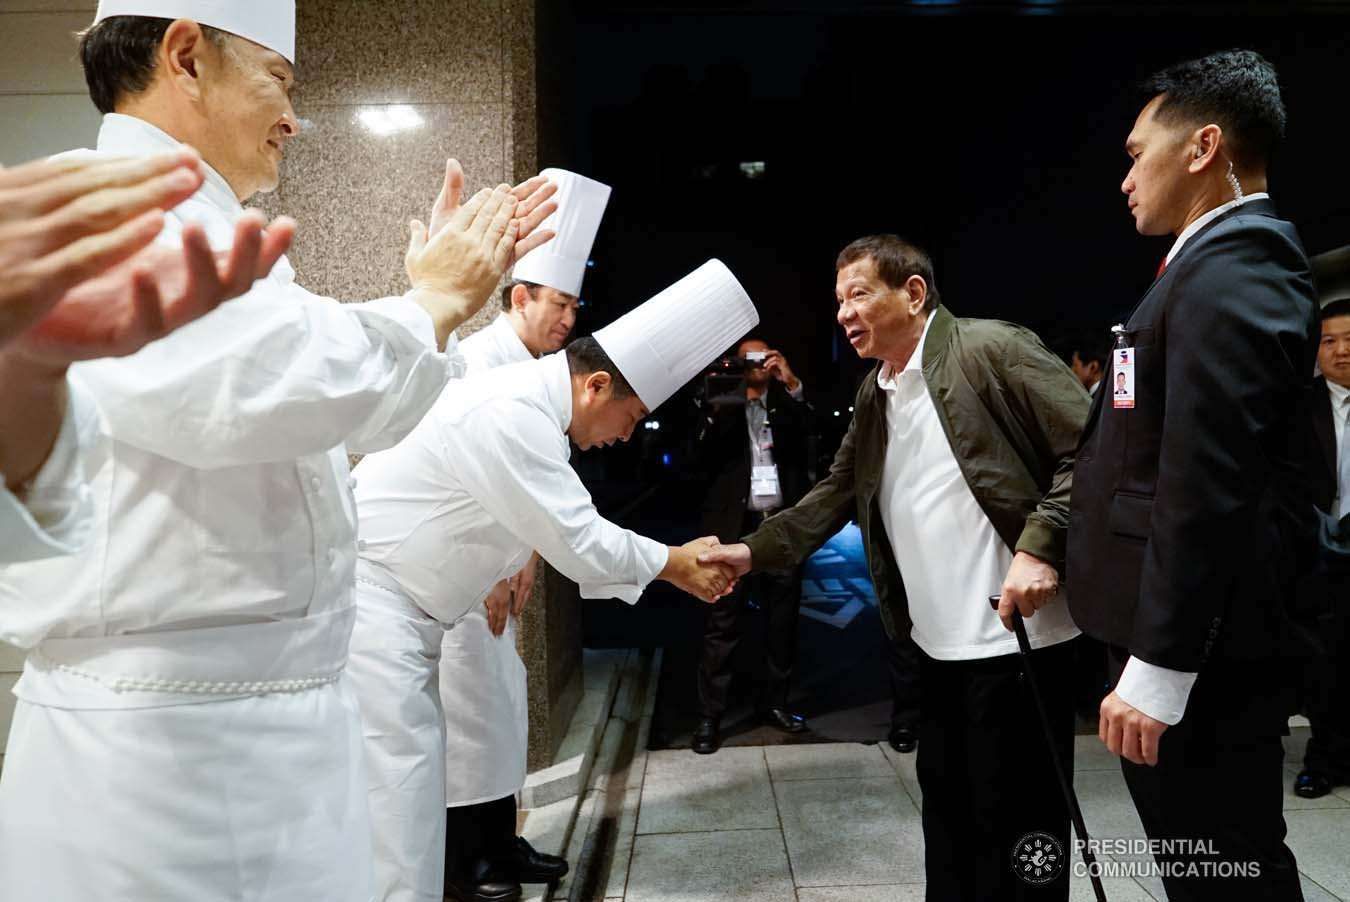 President Rodrigo Roa Duterte bids farewell to one of the chefs of a hotel in Tokyo, Japan before heading to the Haneda International Airport following his attendance to the Ceremonies of the Accession to the Throne of His Majesty Emperor Naruhito at the Imperial Palace on October 22, 2019. KING RODRIGUEZ/PRESIDENTIAL PHOTO